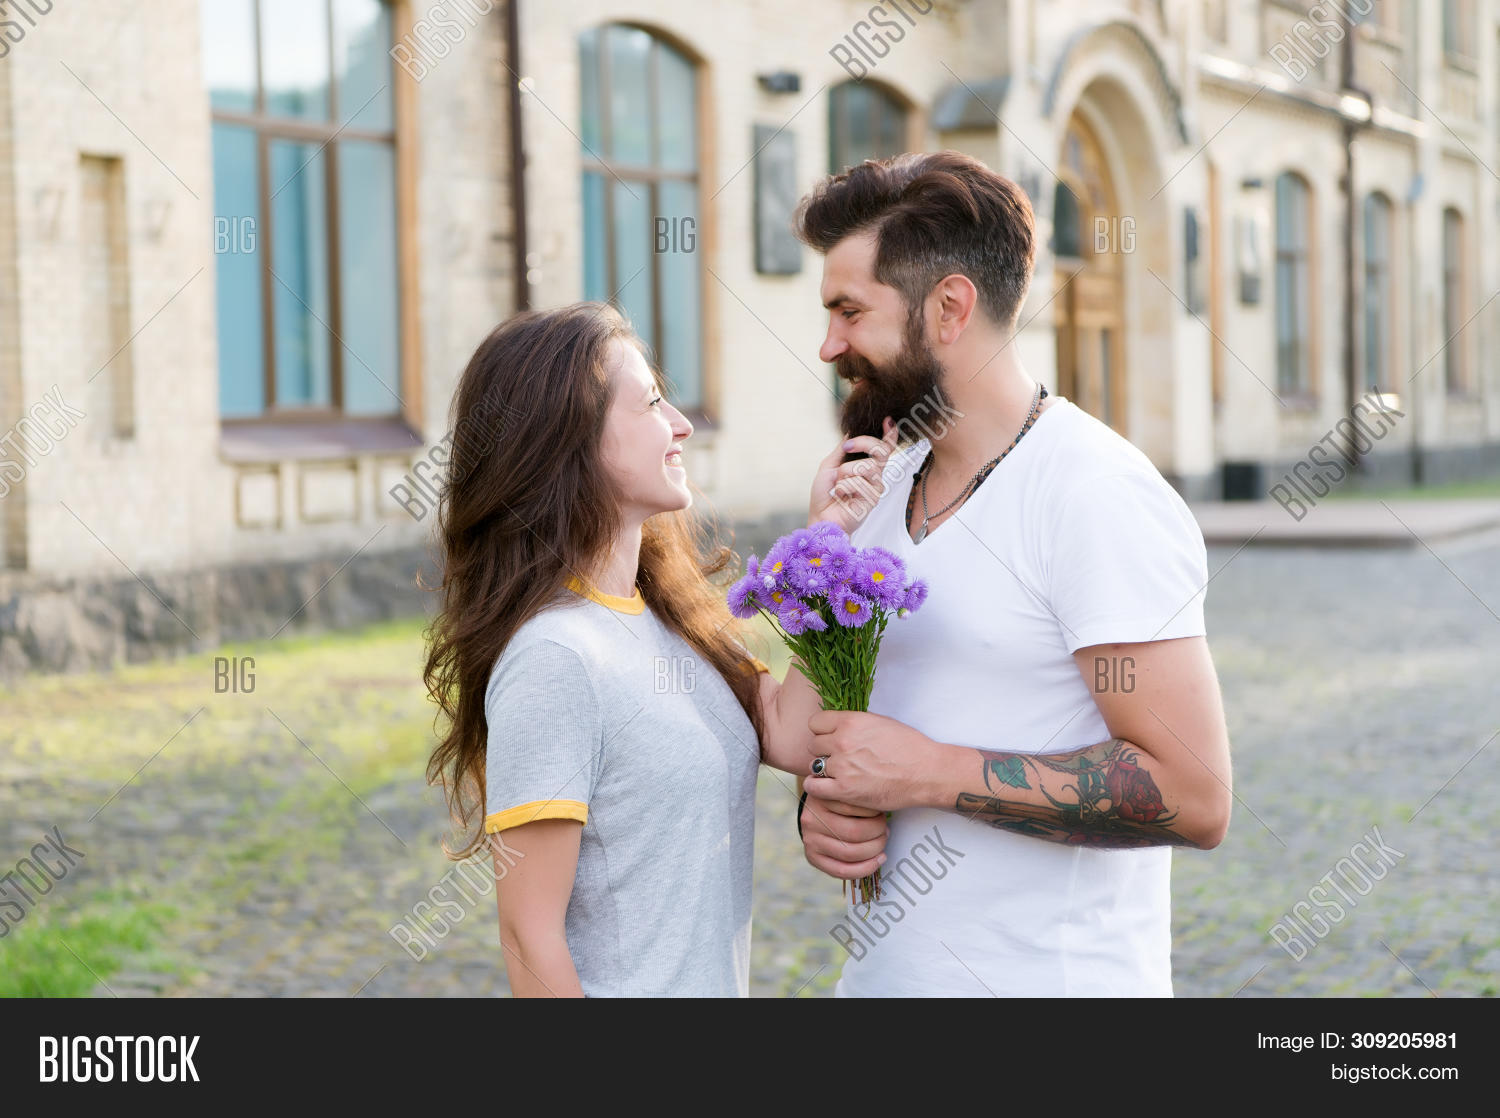 True Feelings. Pick Up Girl For Date. Bearded Hipster Fall In Love. Couple Meeting For Date. Bouquet